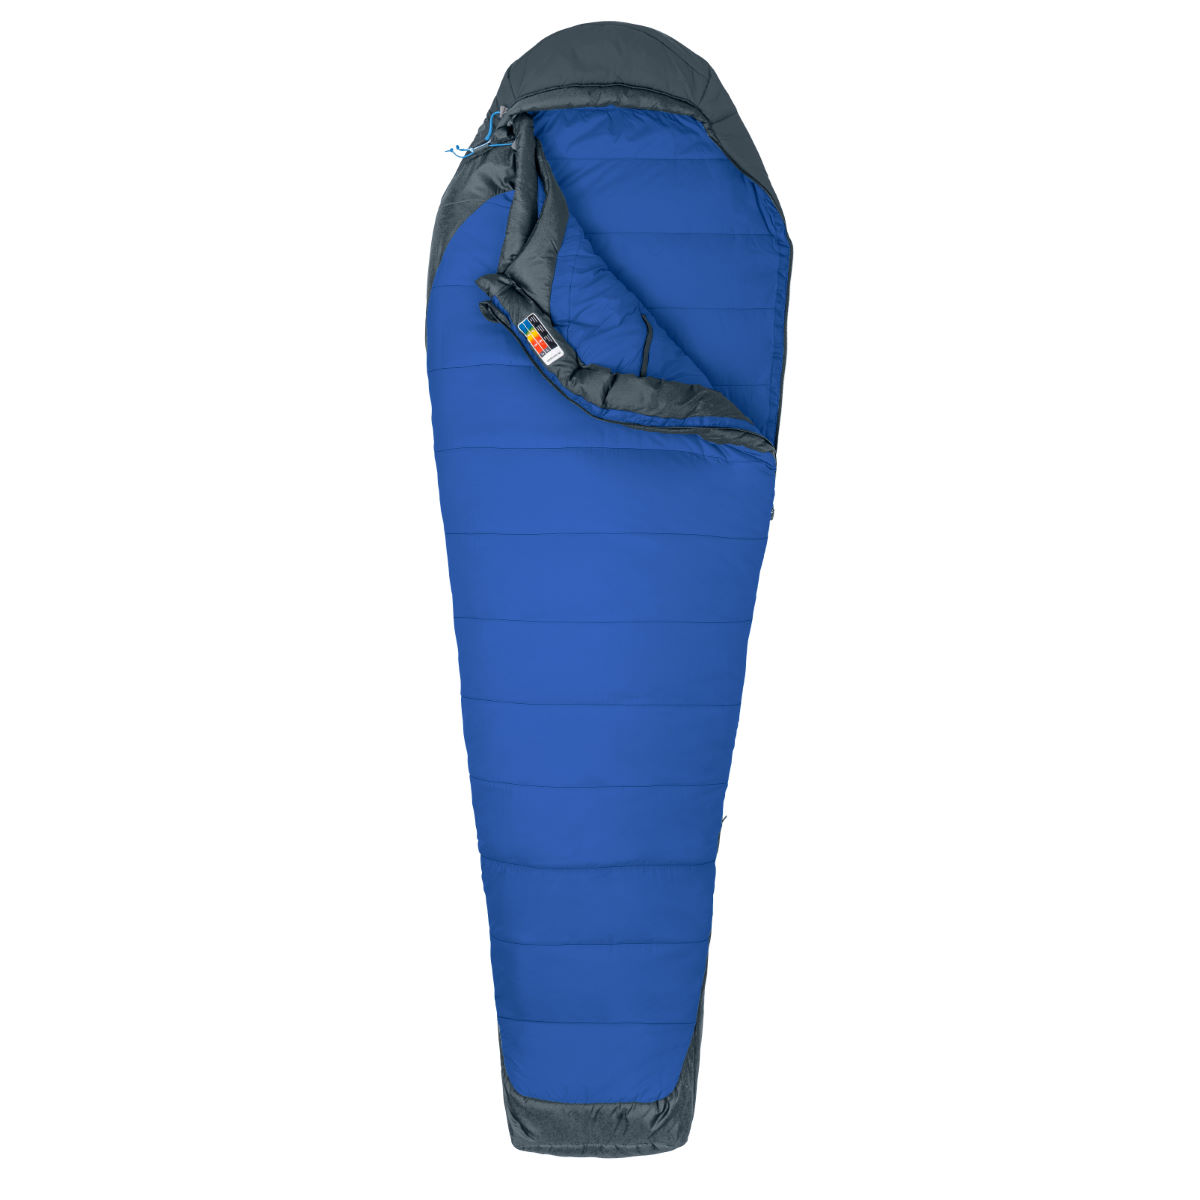 Marmot Trestles Elite 15 Sleeping Bag - Sacos de dormir